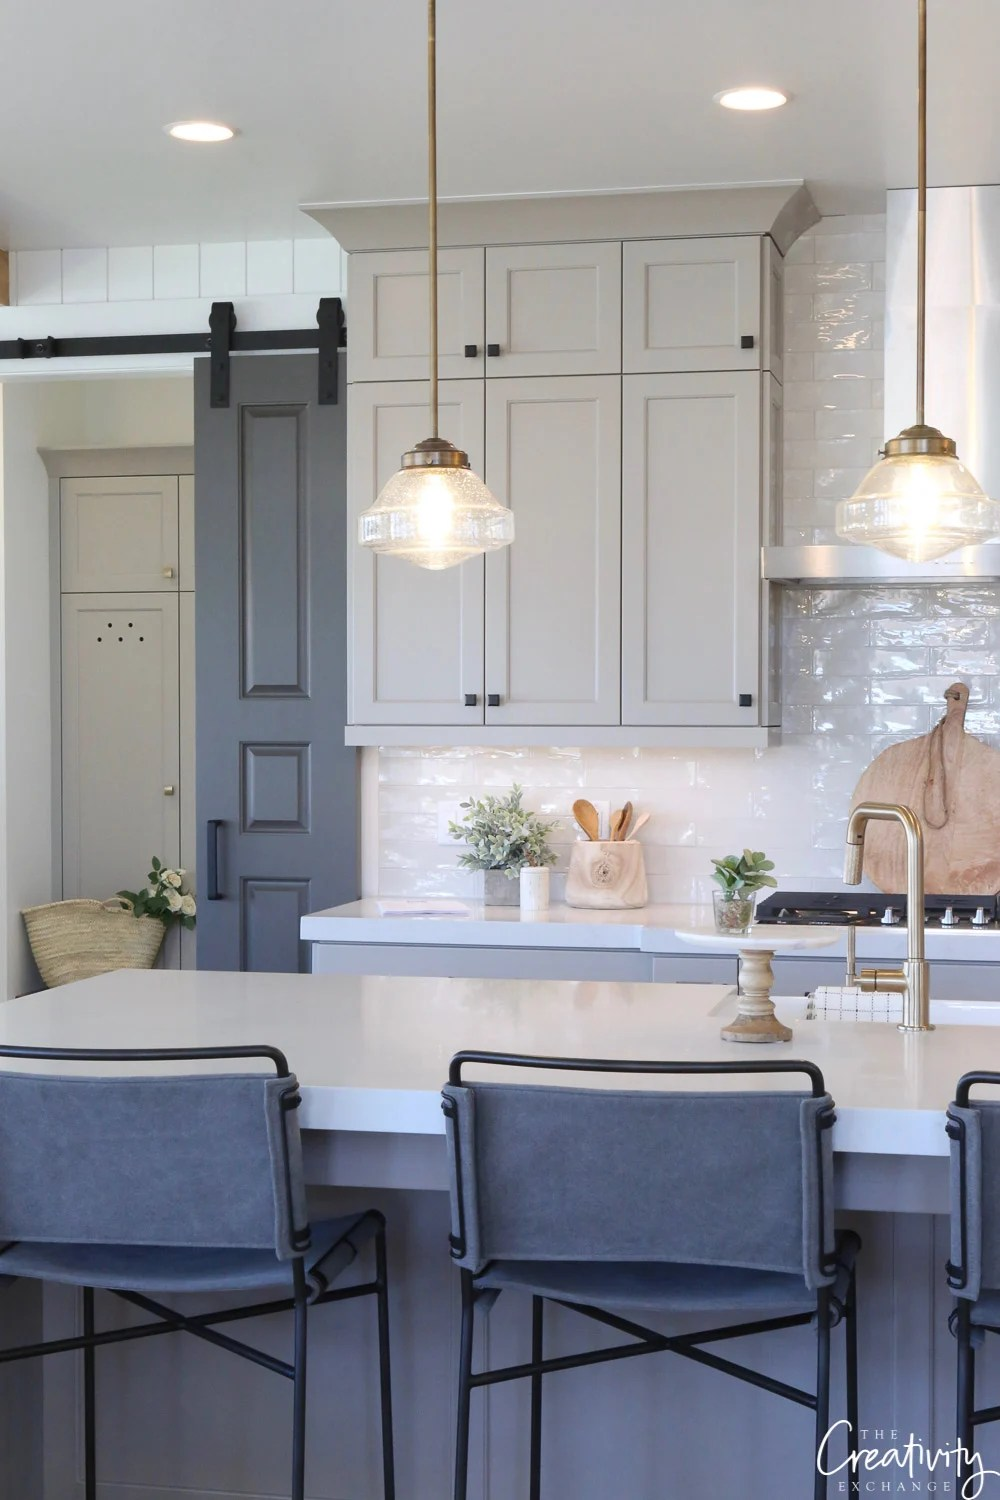 30 beautiful cabinet paint colors for kitchens and baths on benjamin moore kitchen cabinet paint id=15634